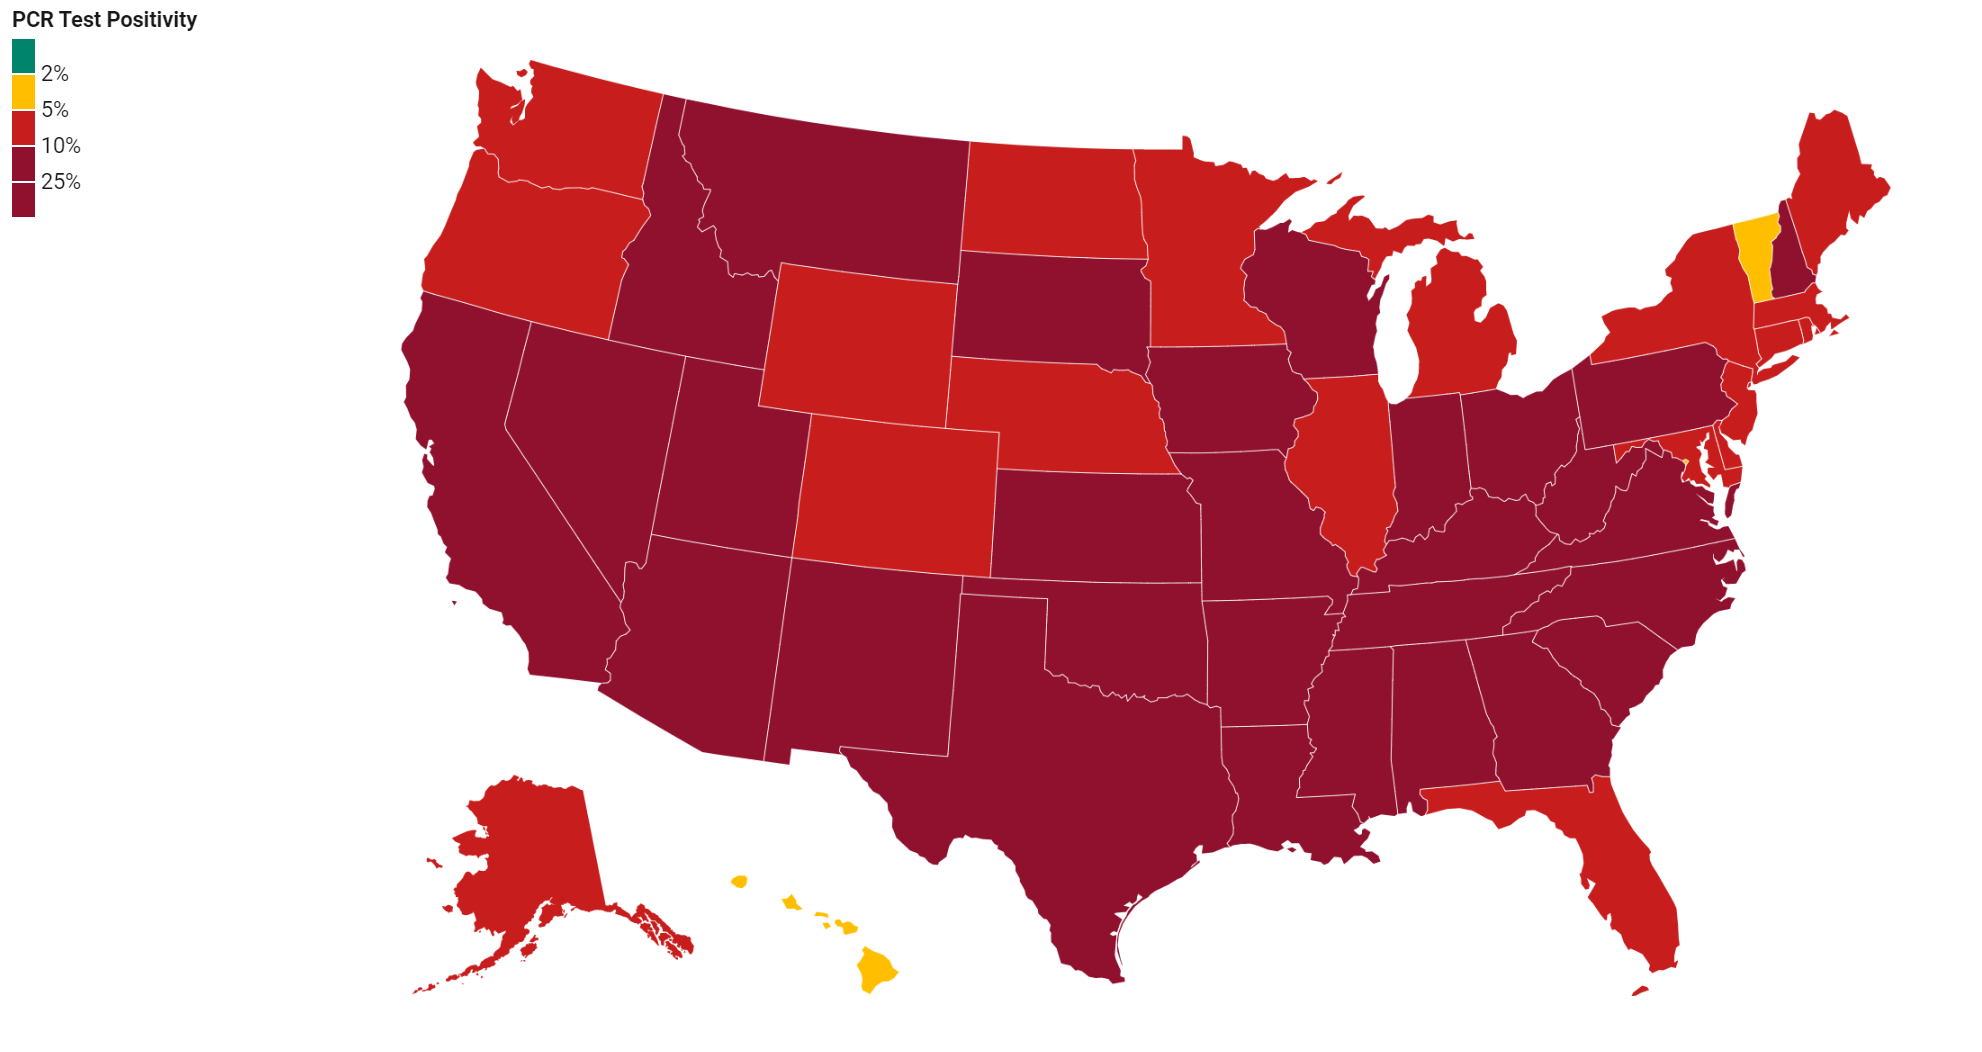 United States map with PCR positivity per state